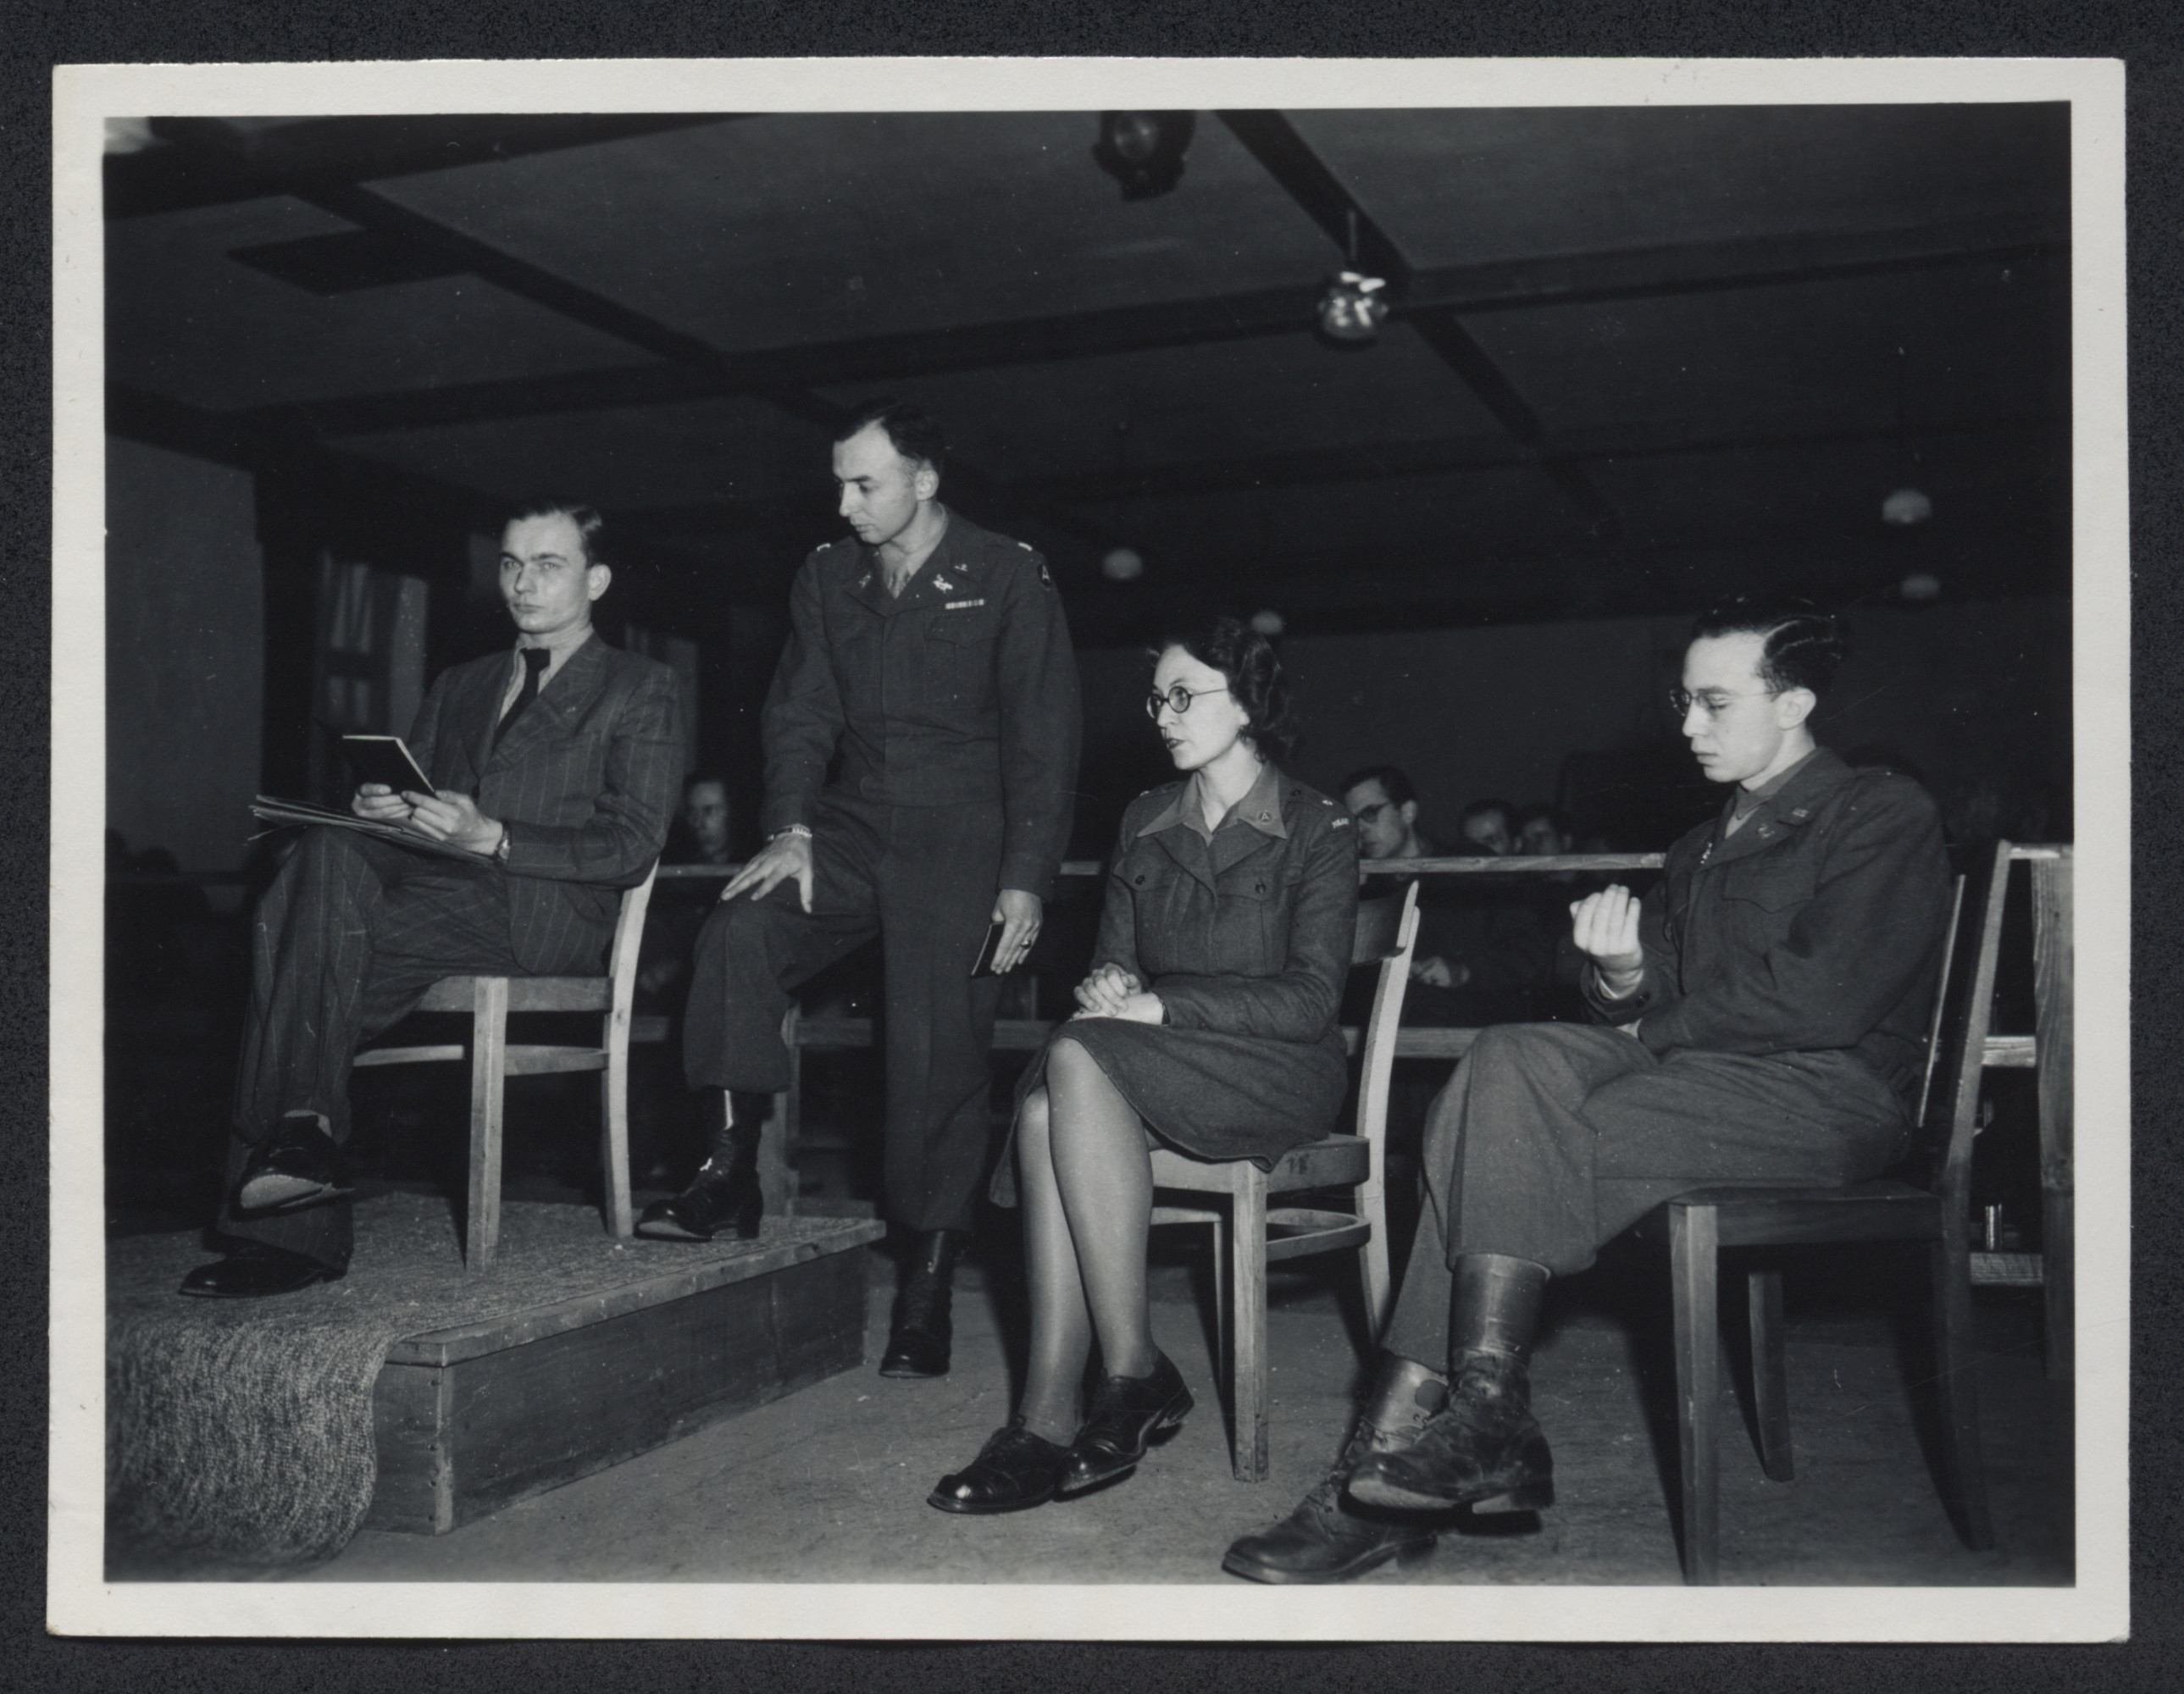 Prosecution witness Michael Pellis, a former inmate at Dachau, testifies at the Dachau trial.  Pictured second from the left is prosecuting attorney Lt. Colonel William Denson.